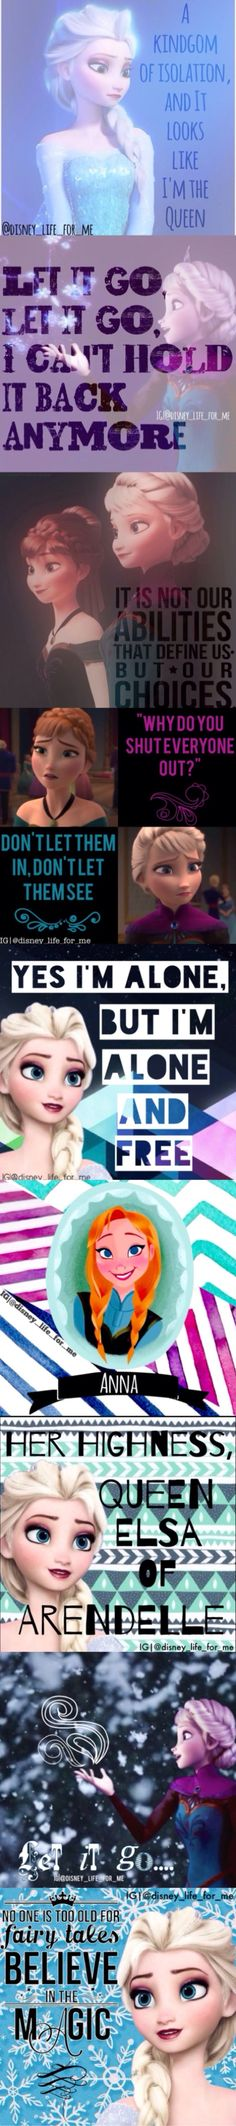 Disney's Frozen Anna and Elsa, quotes, edits by IG @disney_life_for_me